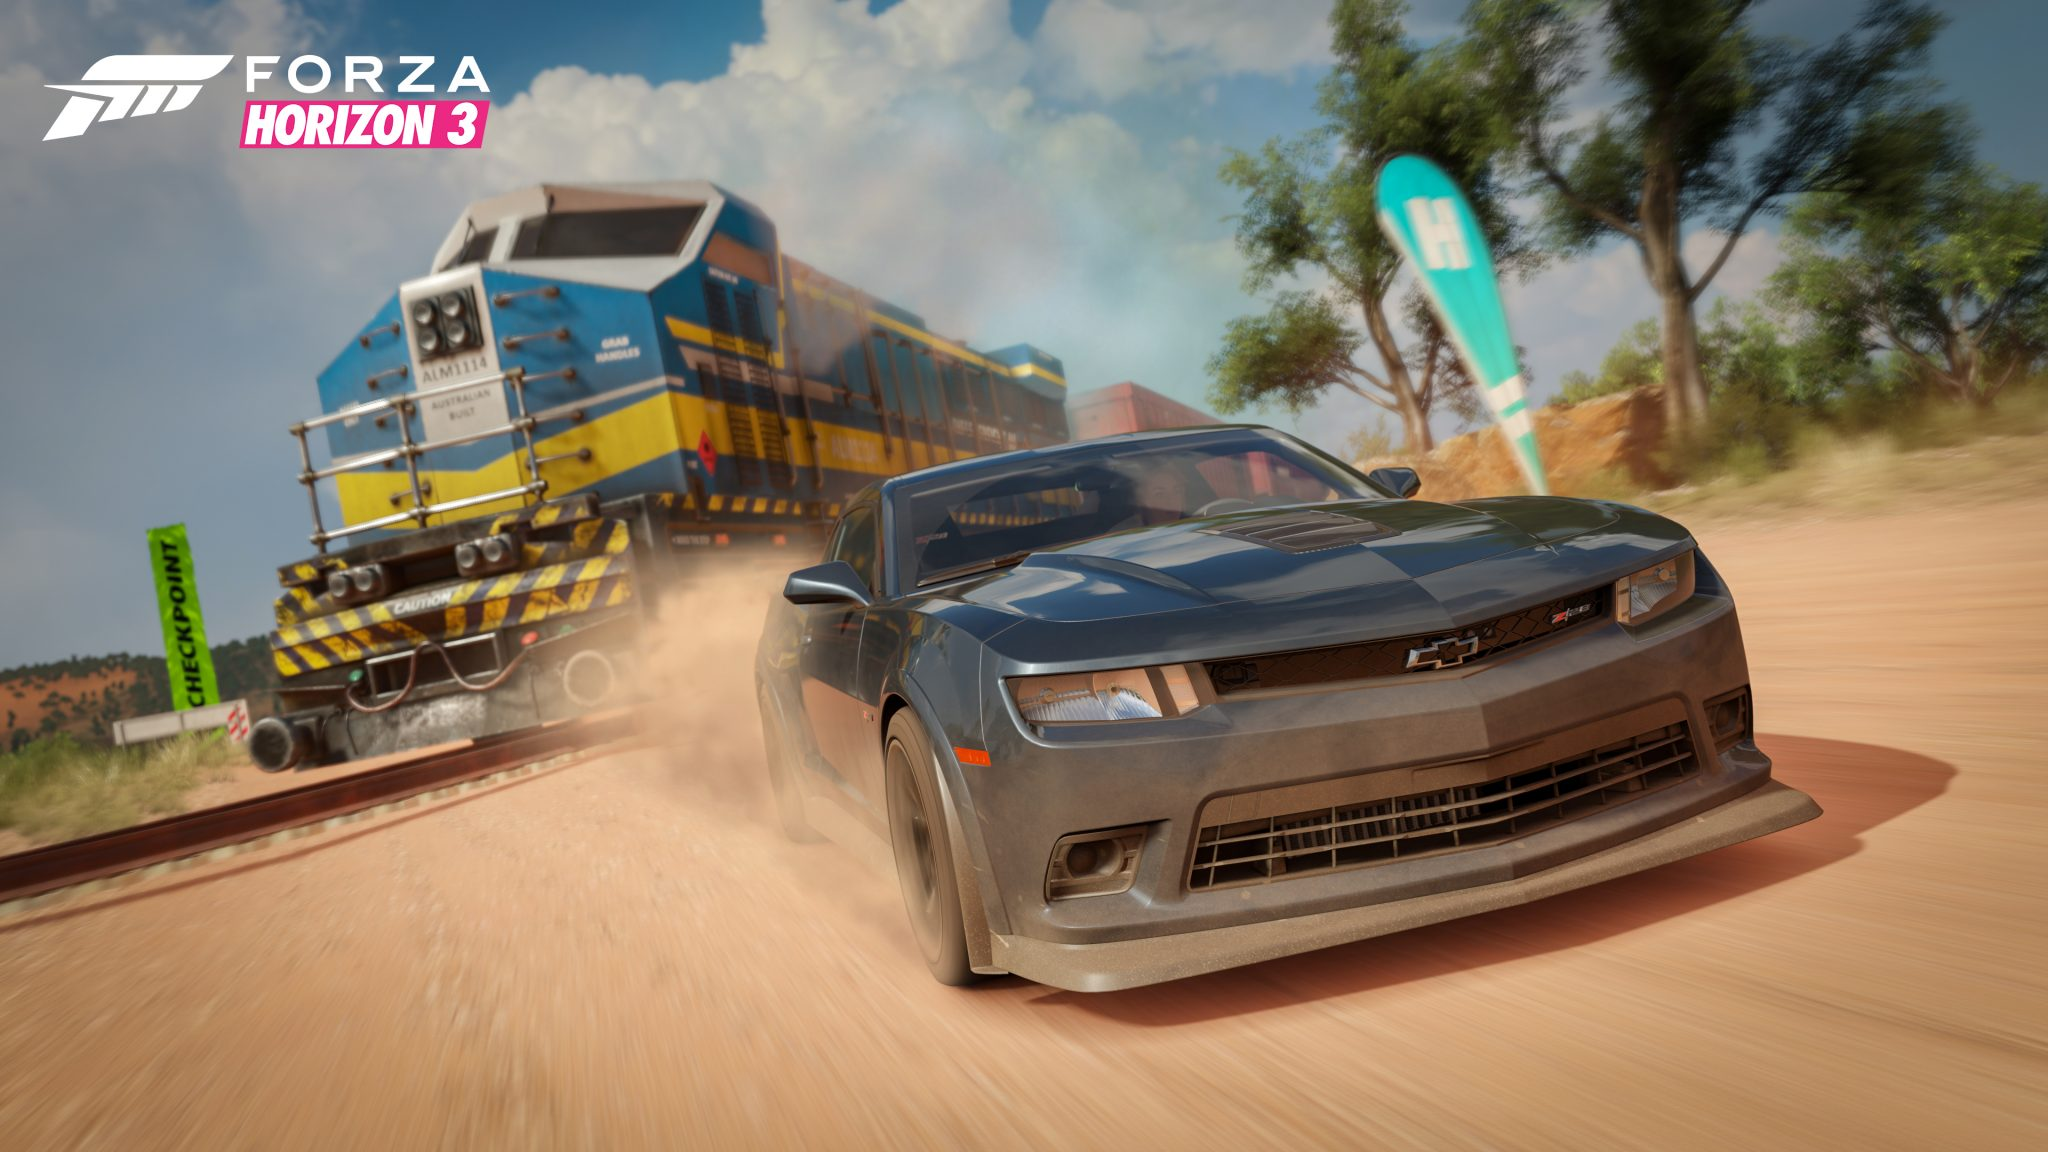 Forza Horizon 3's October Update Is Now live, Full Patch Notes Inside